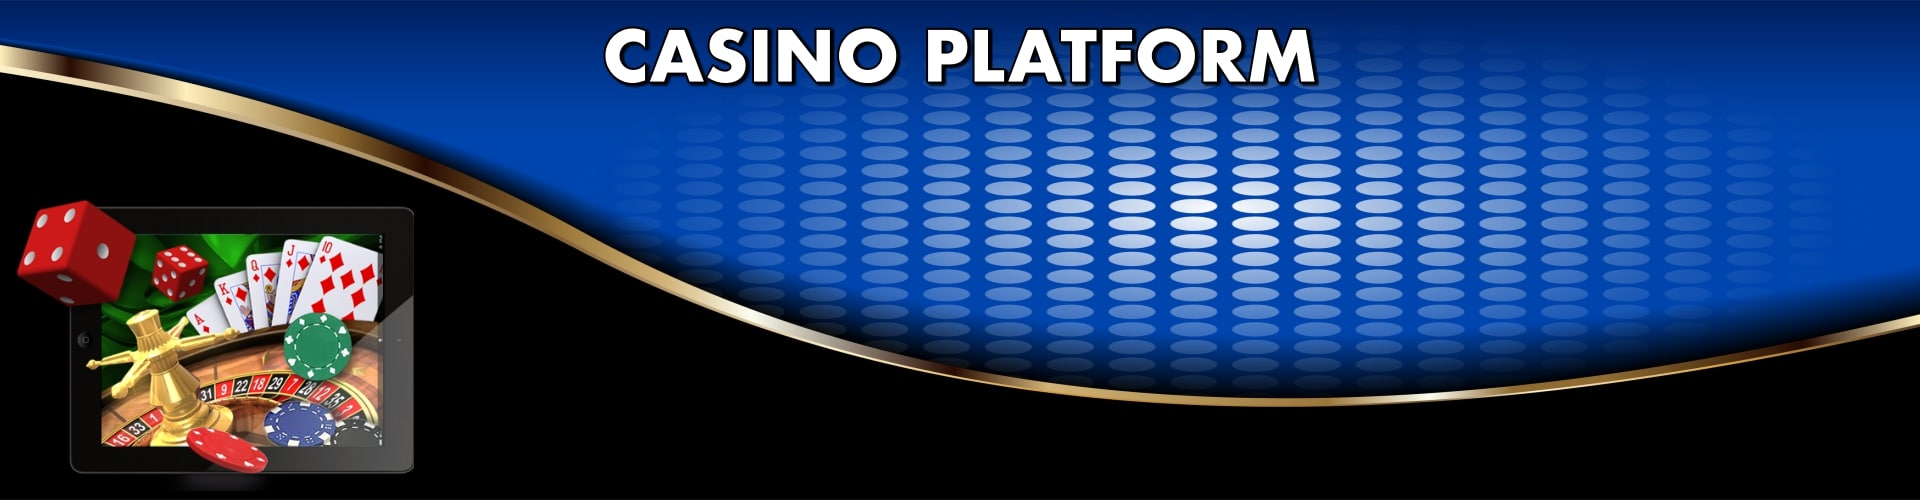 online casino software platform banner